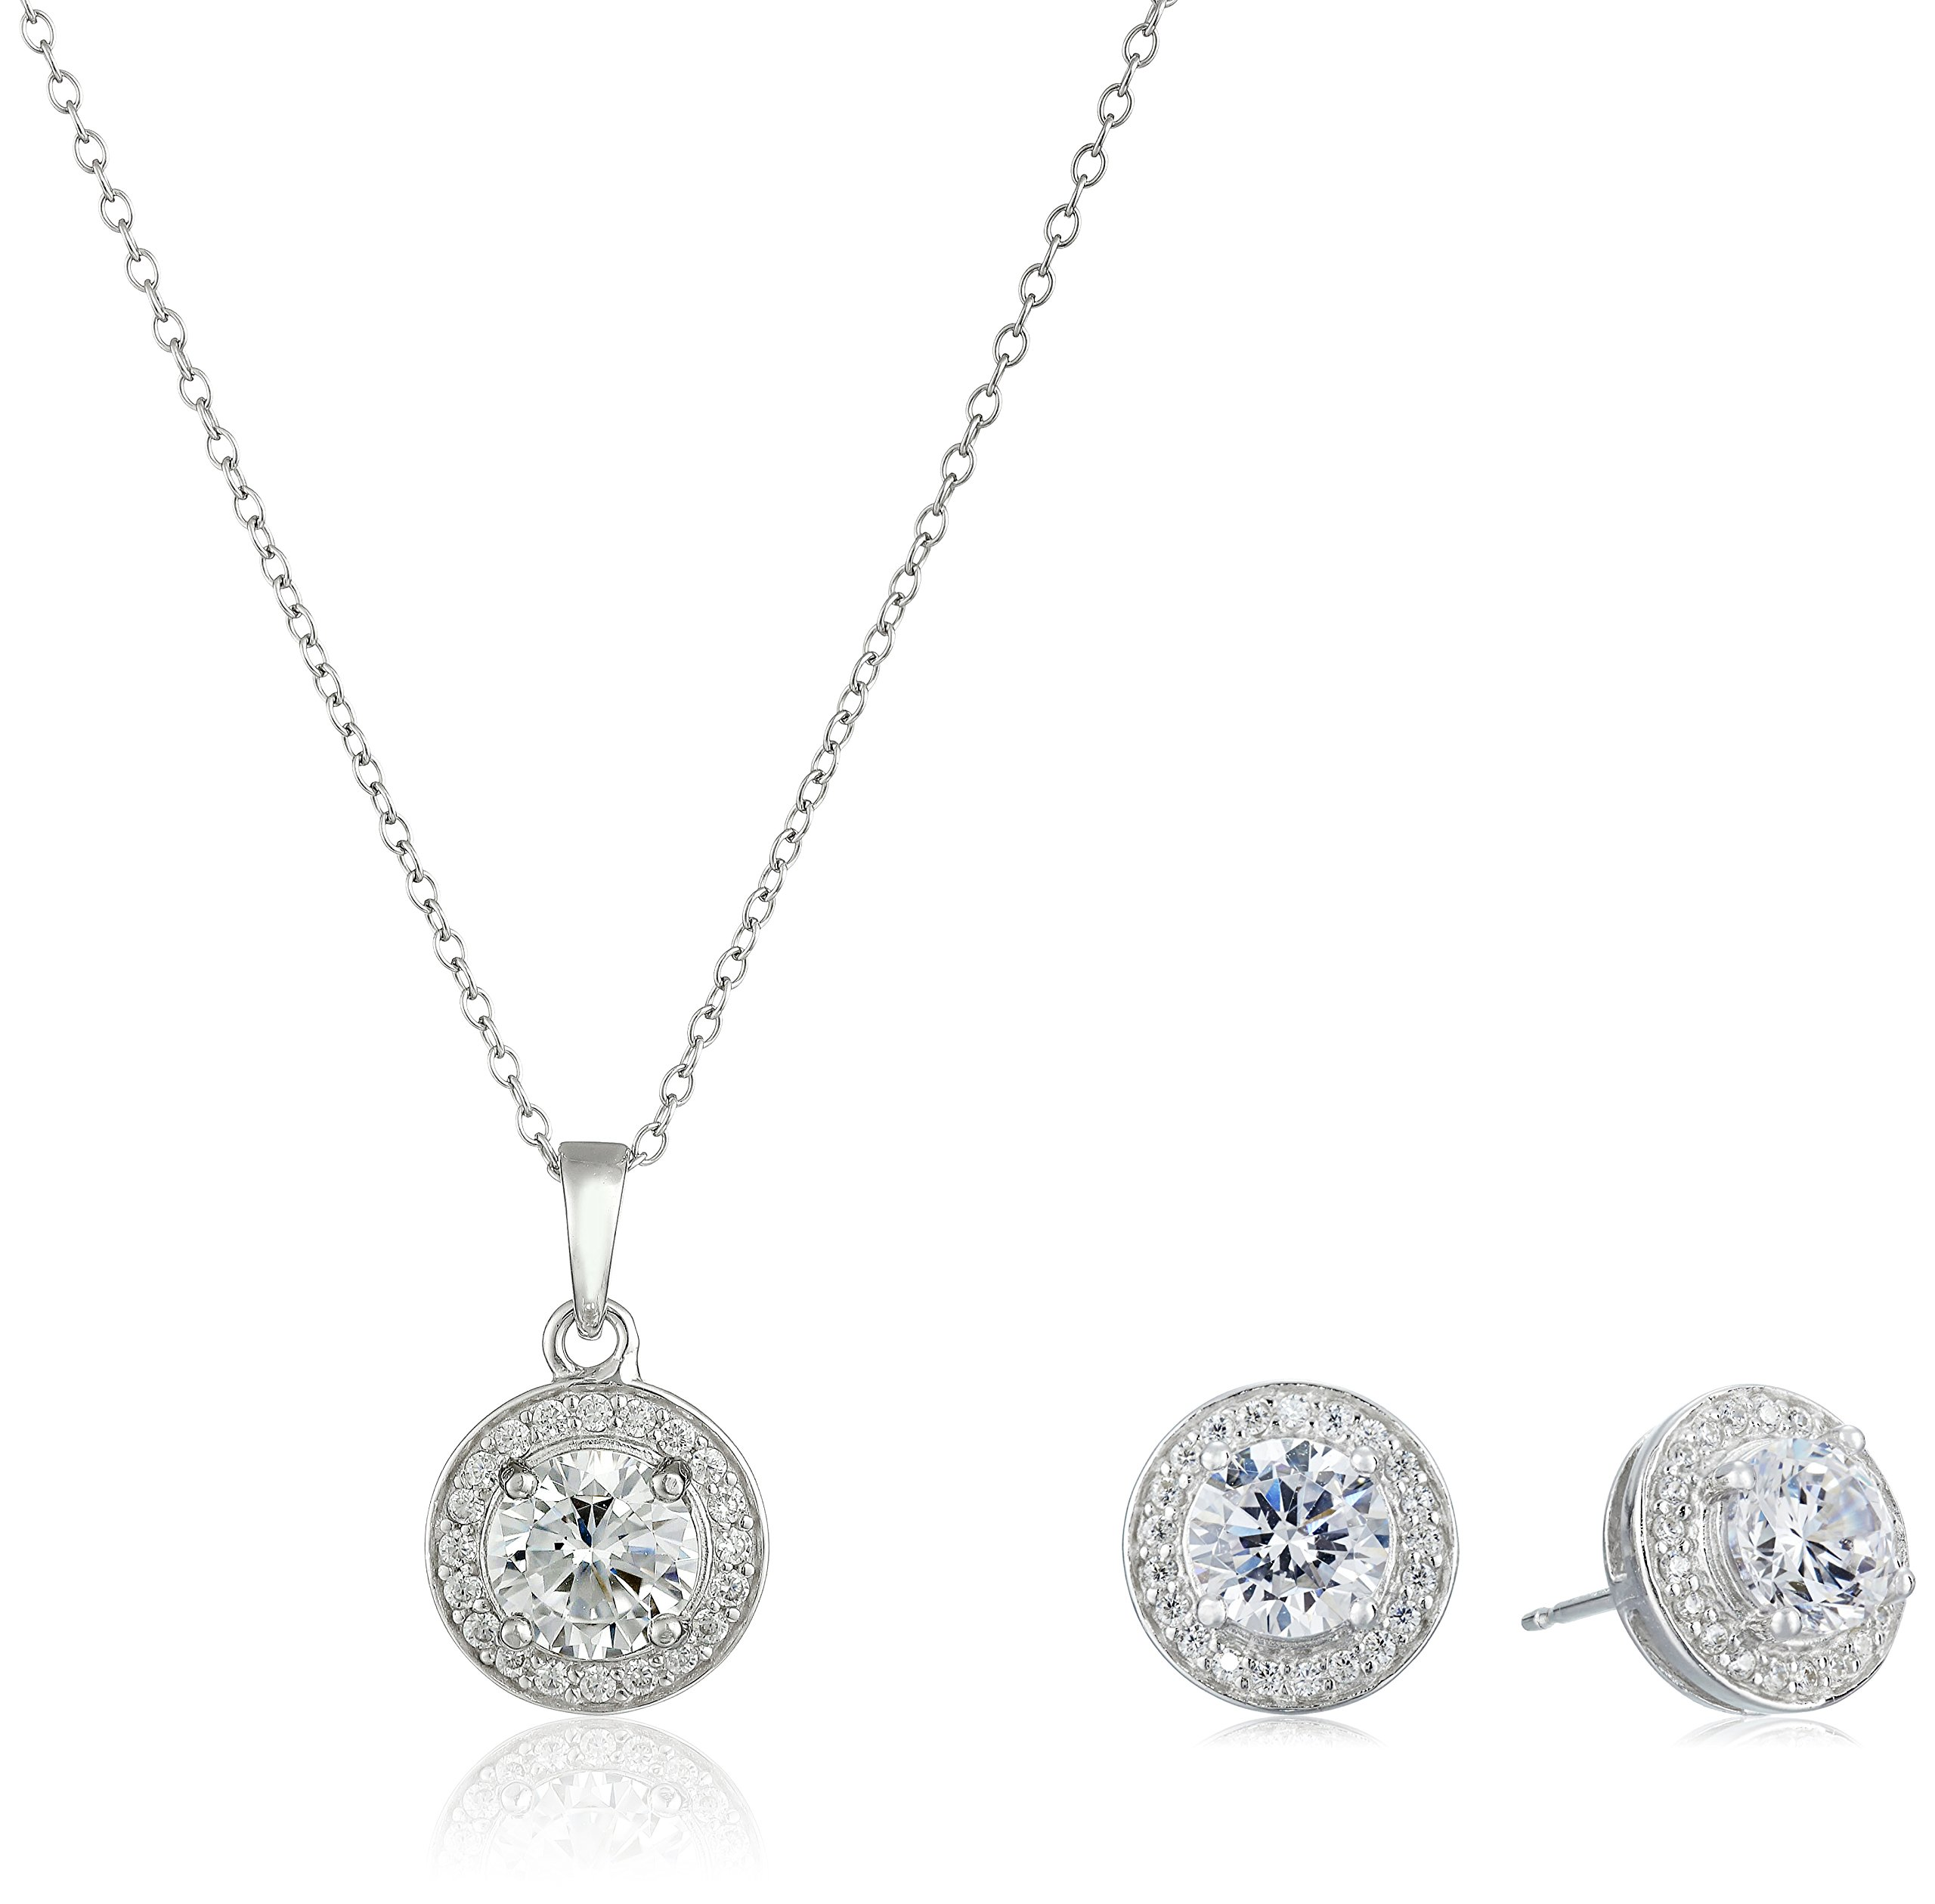 Sterling Silver Cubic Zirconia Halo Pendant Necklace and Stud Earrings Jewelry Set by Amazon Collection